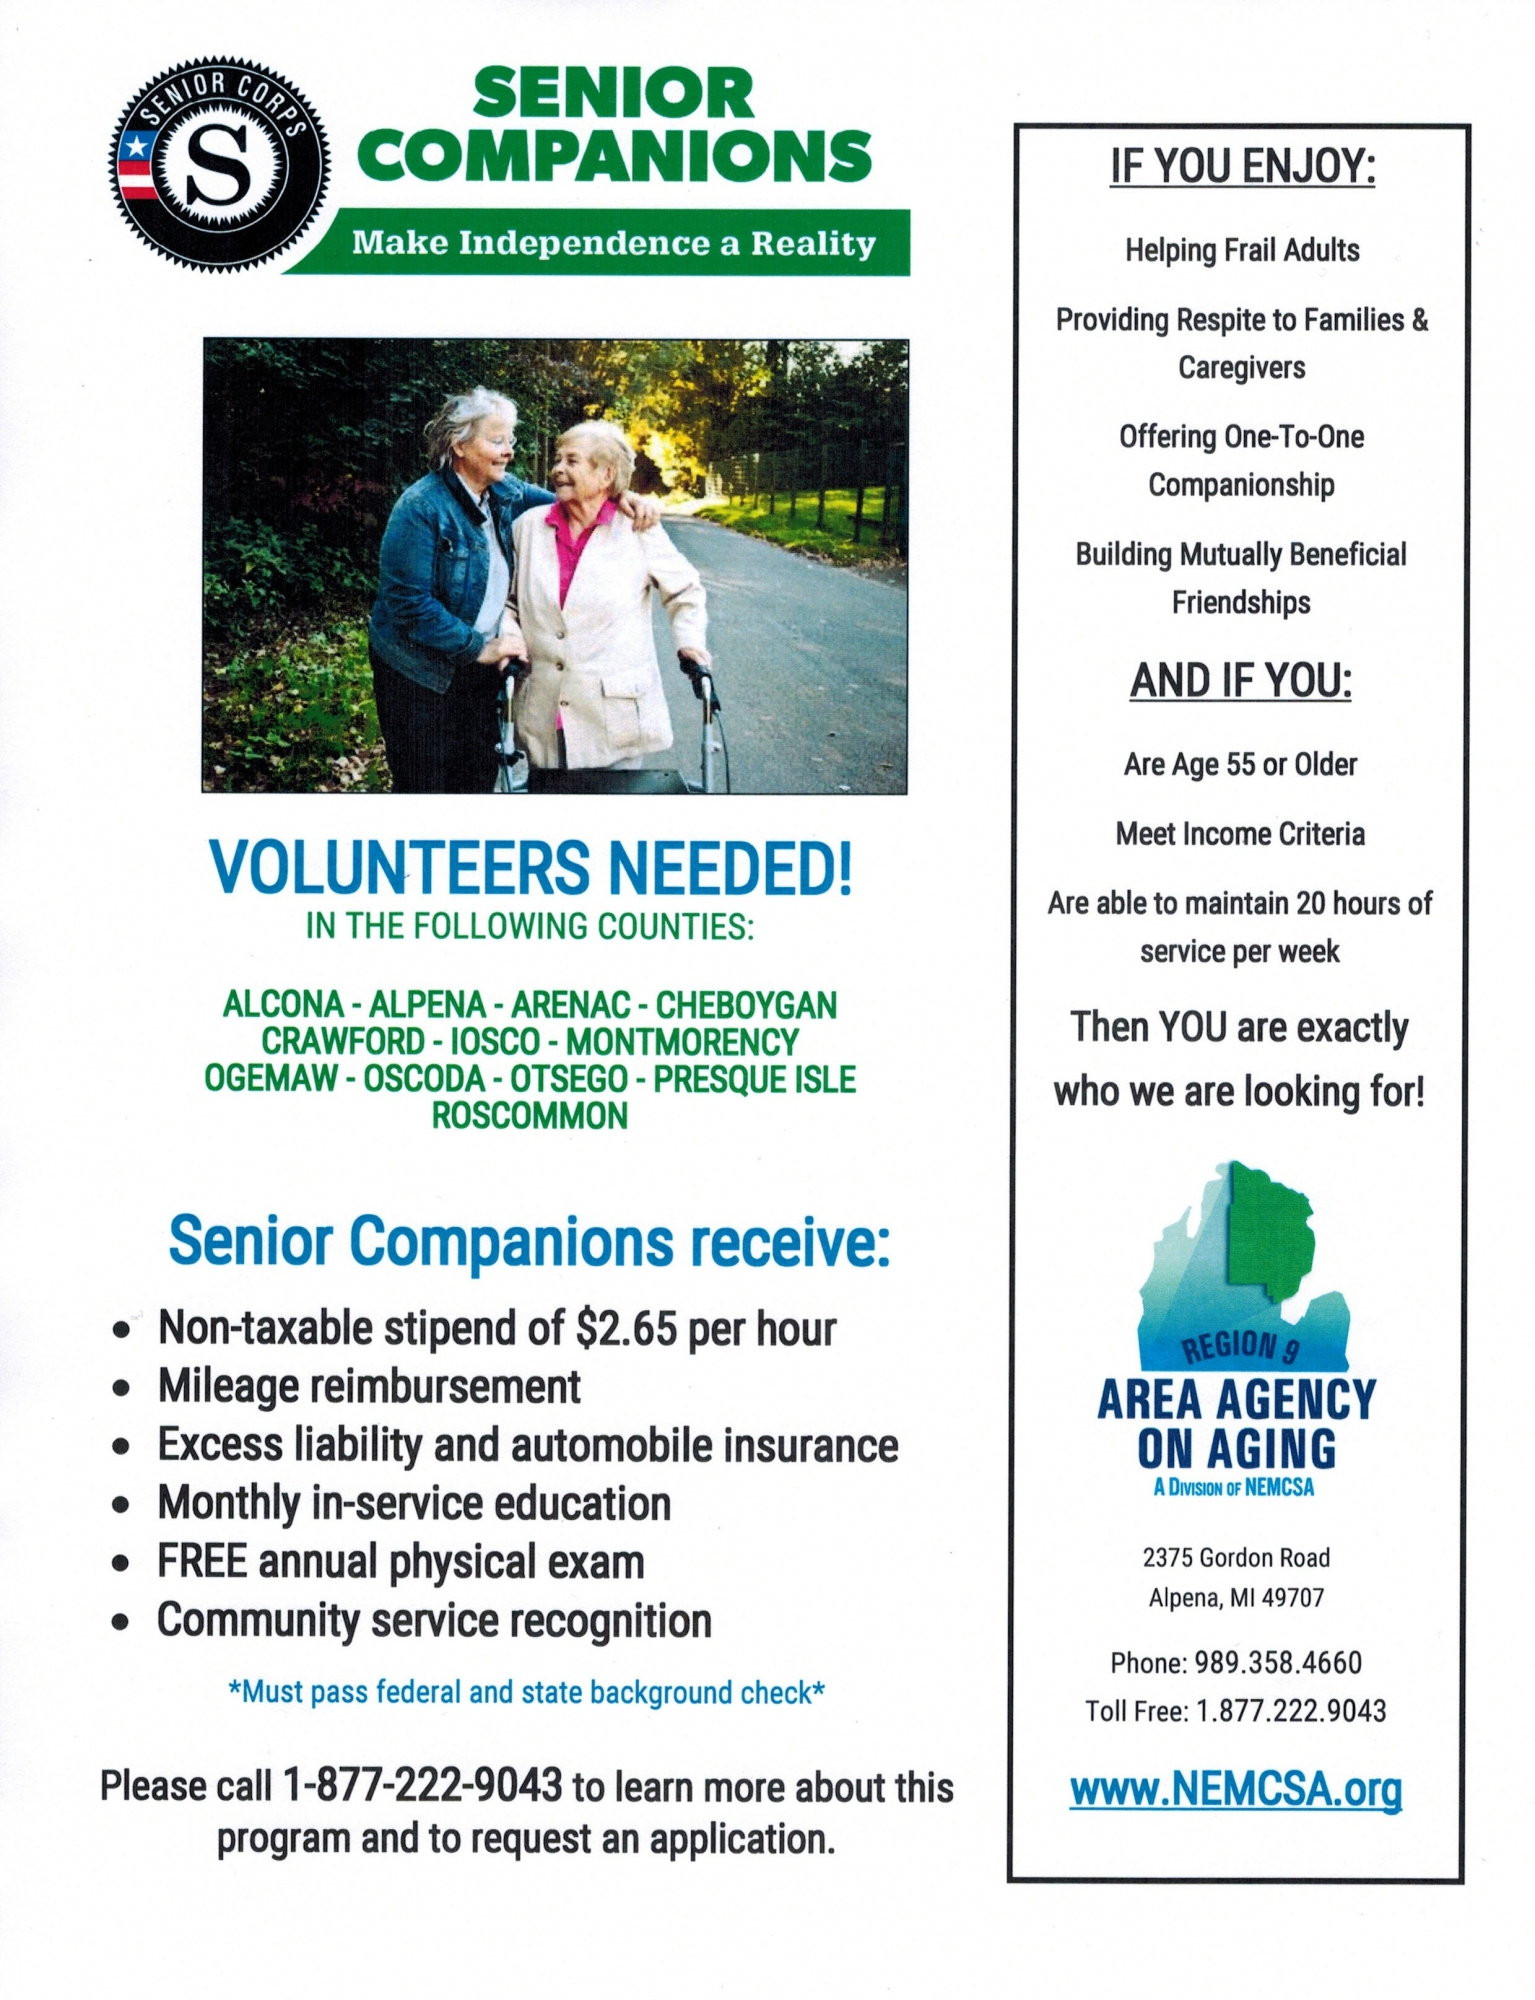 NEMCSA Senior Companion Program Flyer, Call 1-877-222-9043 for more information